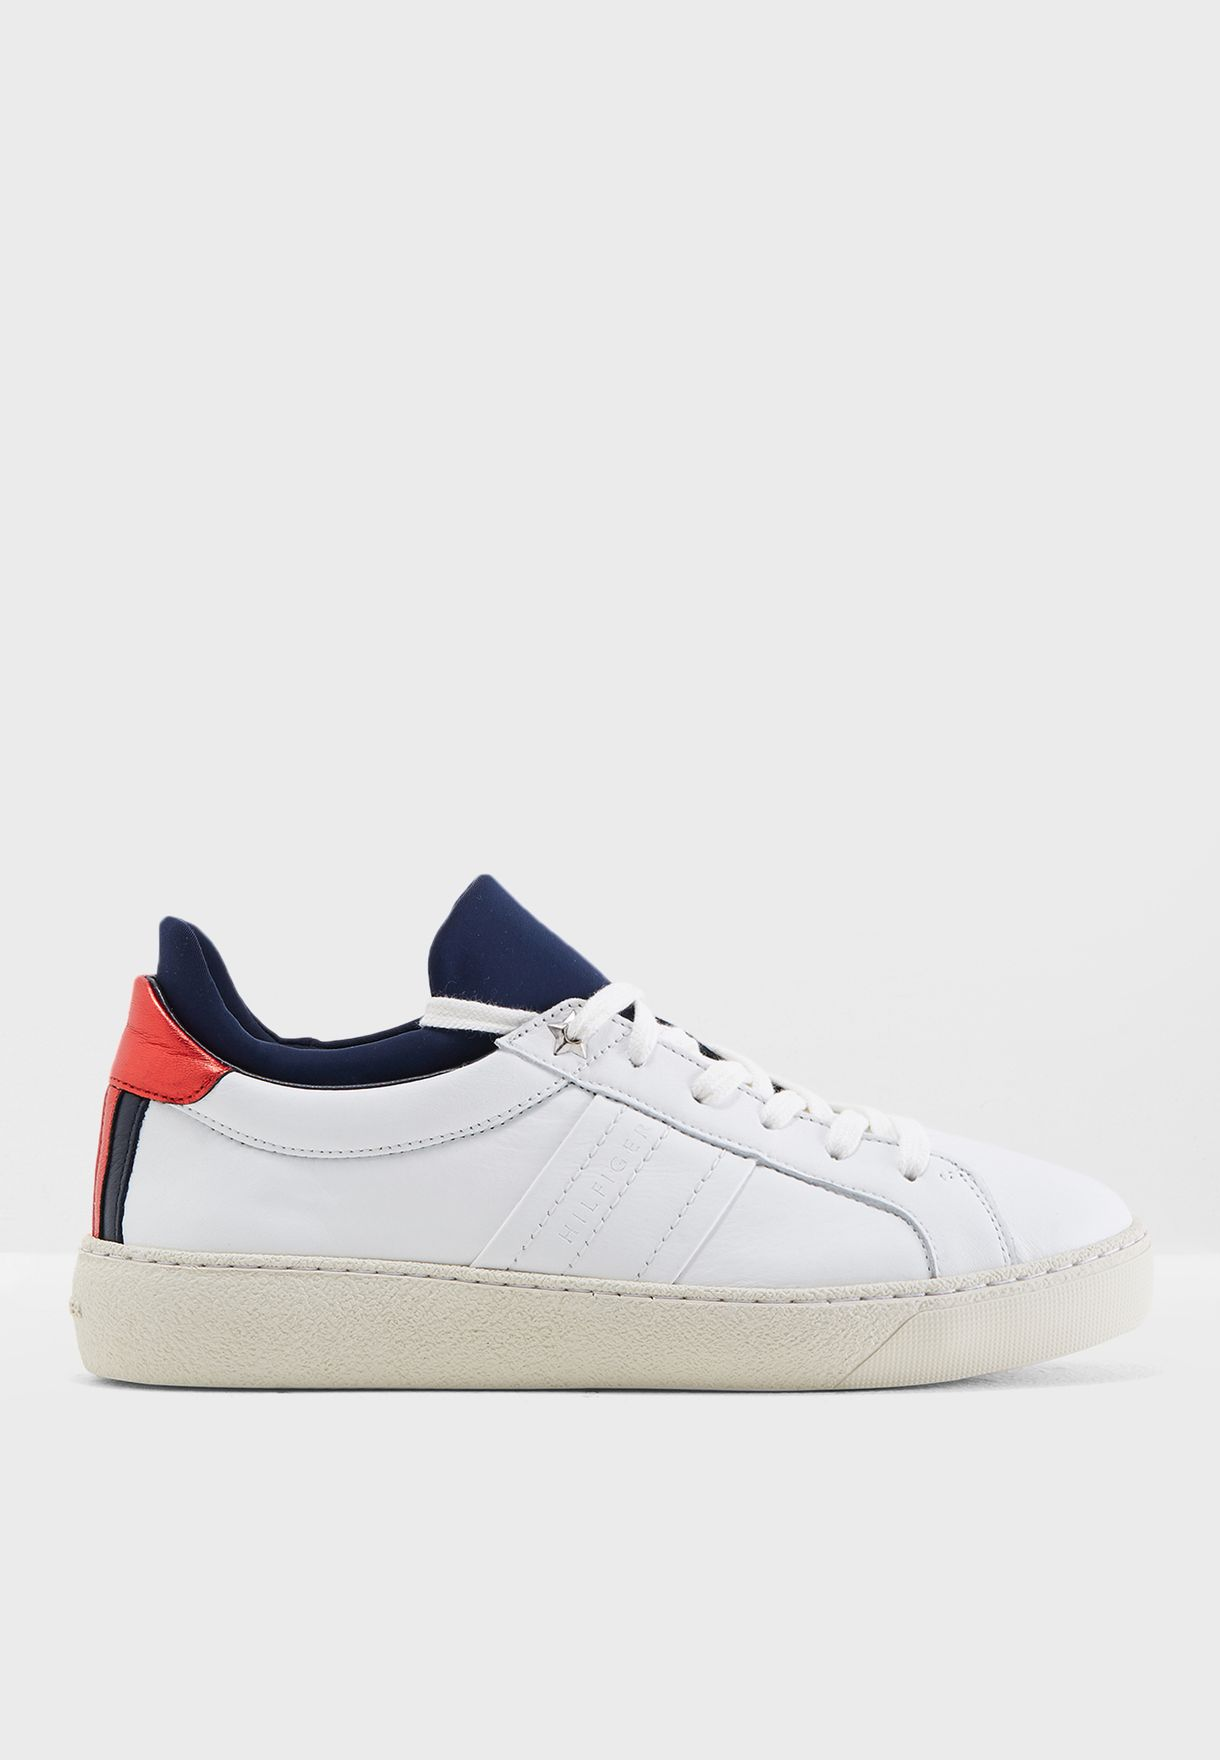 498d9f39c Shop Tommy Hilfiger white Hybrid Iconic Sneaker FW0FW03269020 for ...